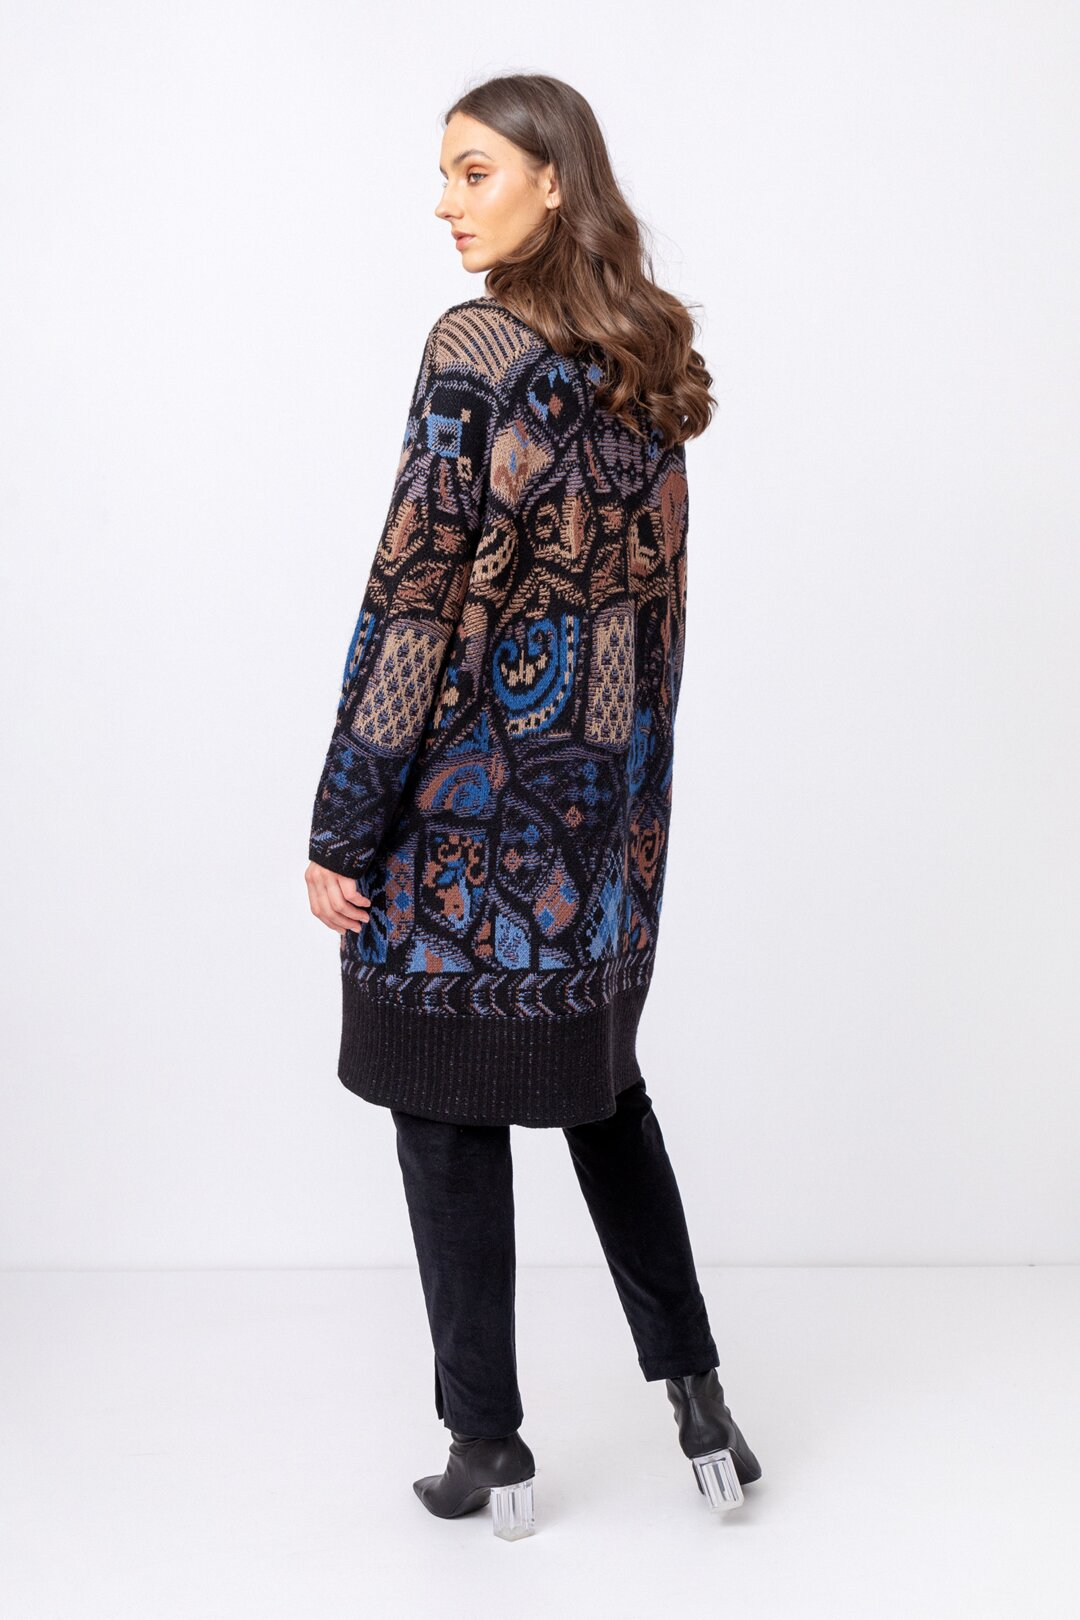 outfit-7c8a1247